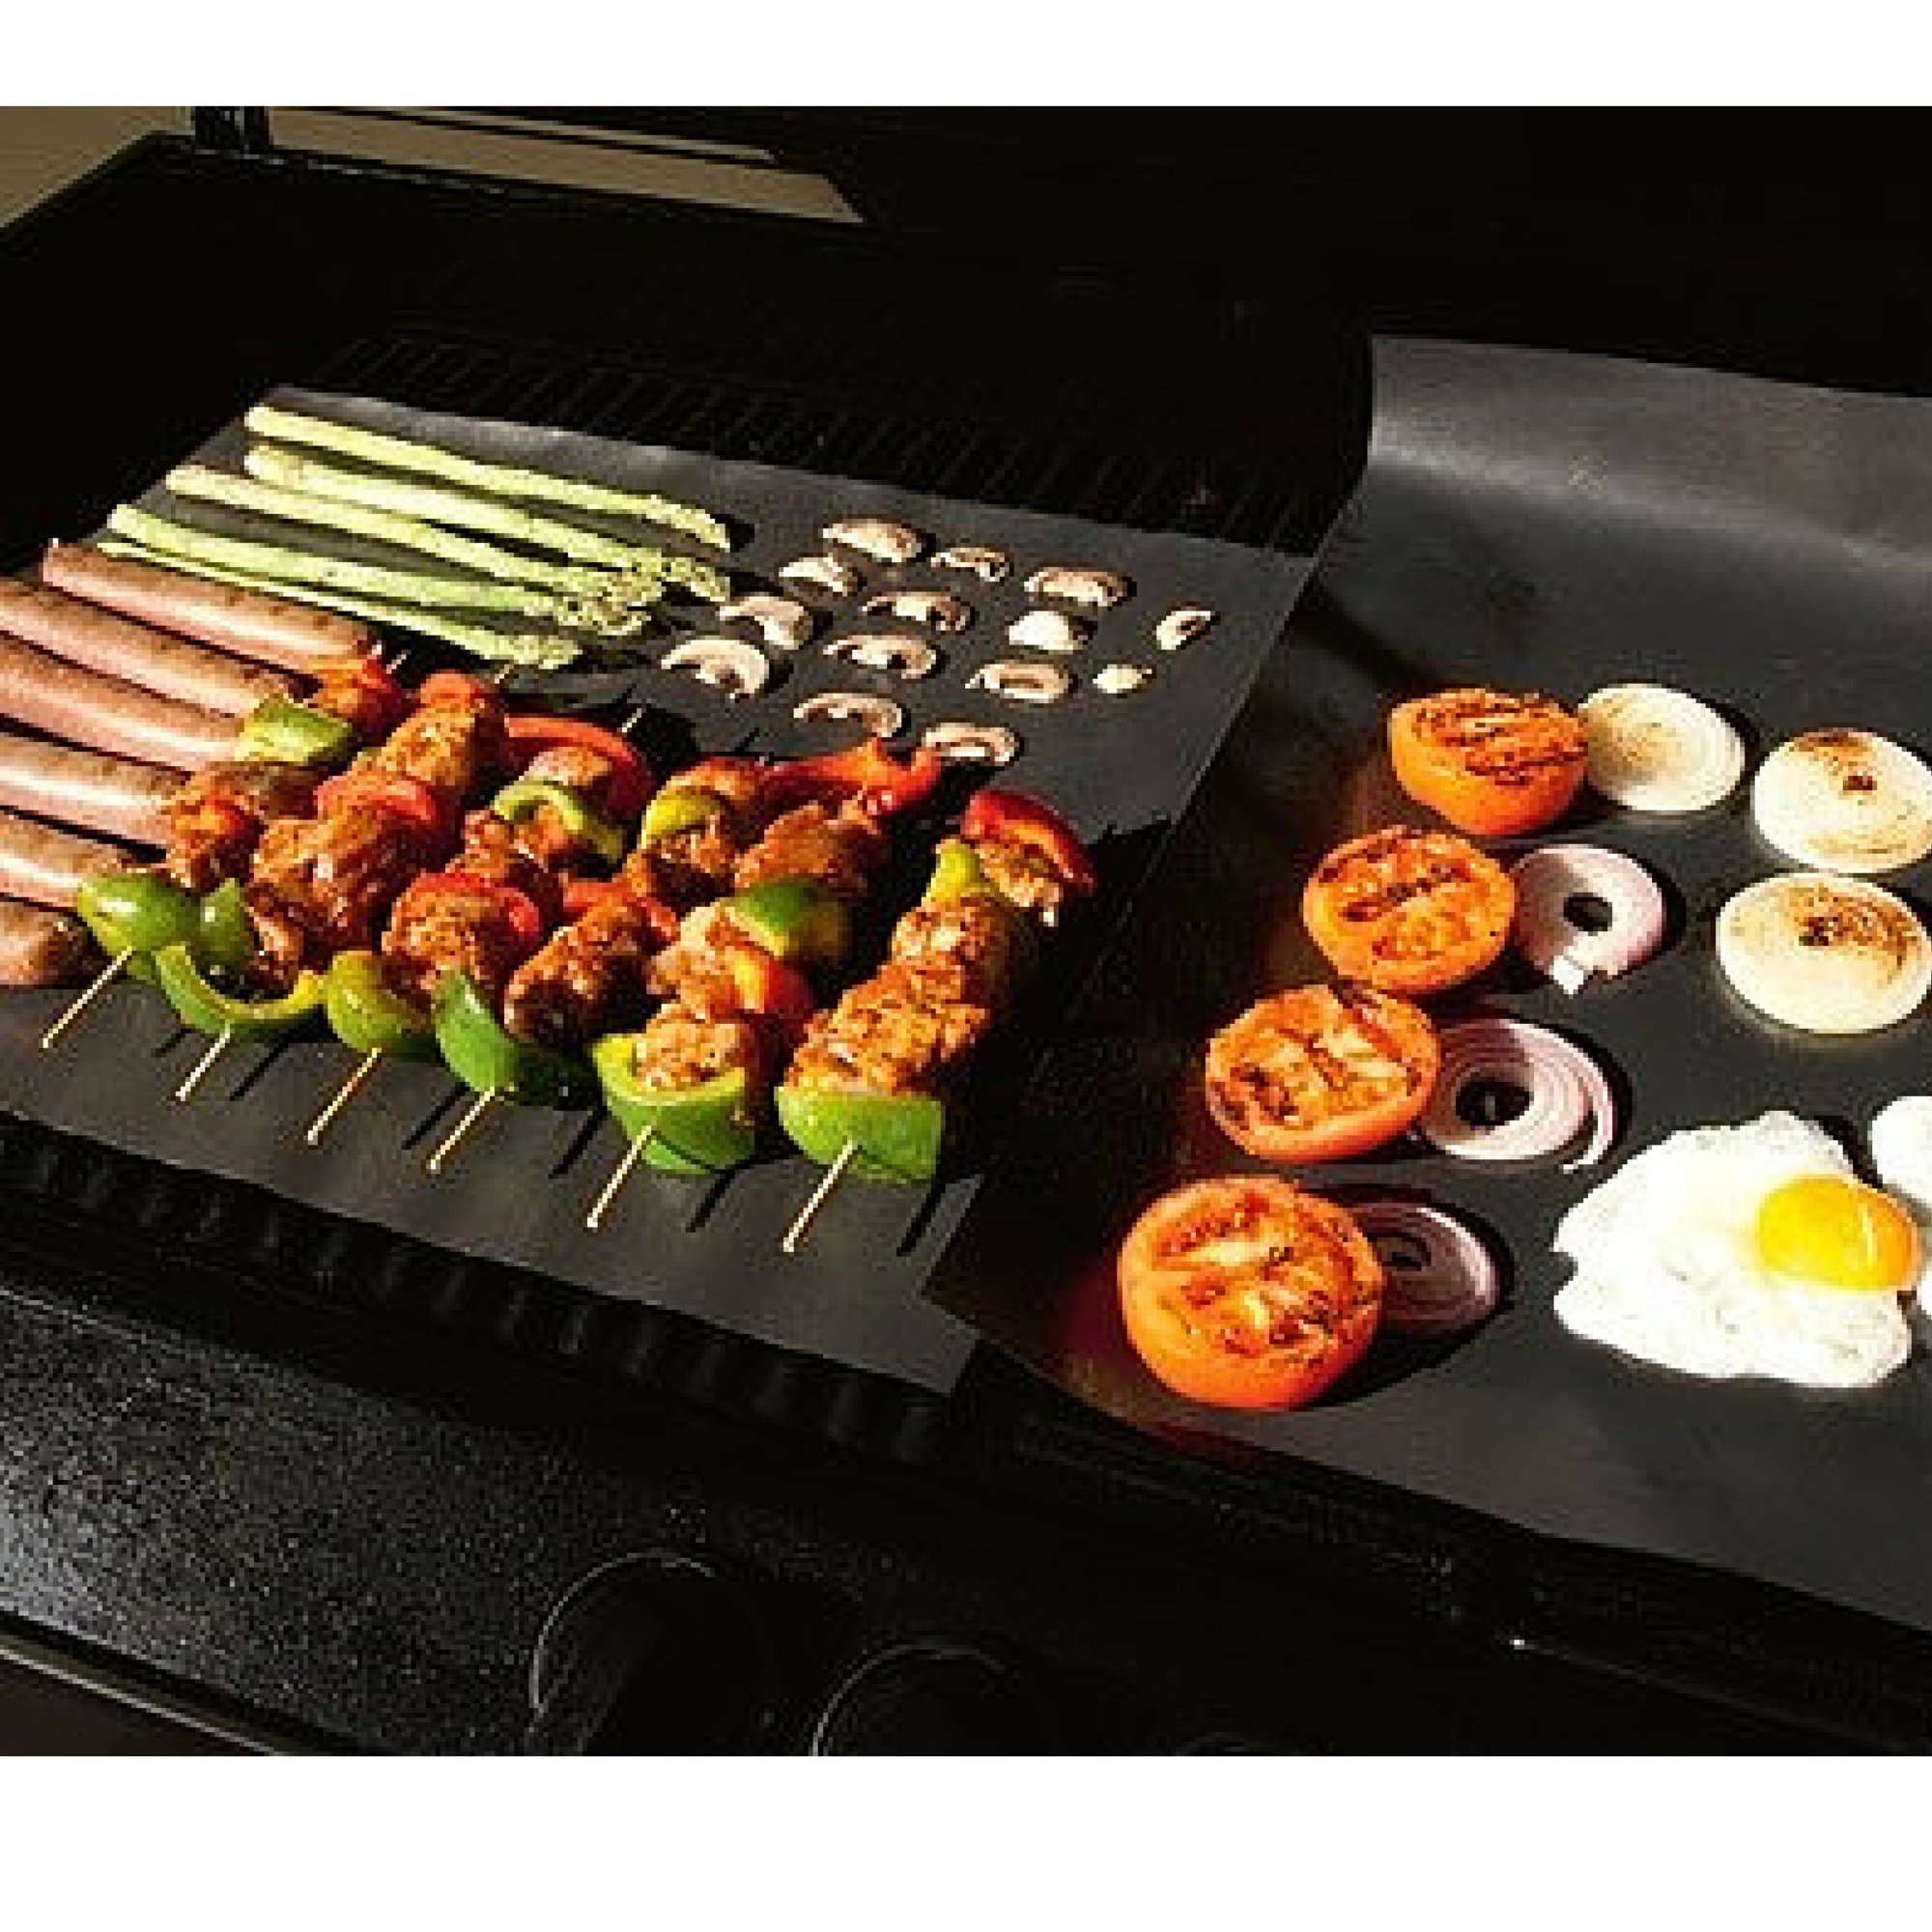 Kubzy BBQ Grill Mat Set of 4 16'' x 13'' Non-Stick, Durable, Heat Resistant - Perfect for Barbecue, Grilling, Oven, Cooking, and Baking by Kubzy Grill Mat (Image #3)